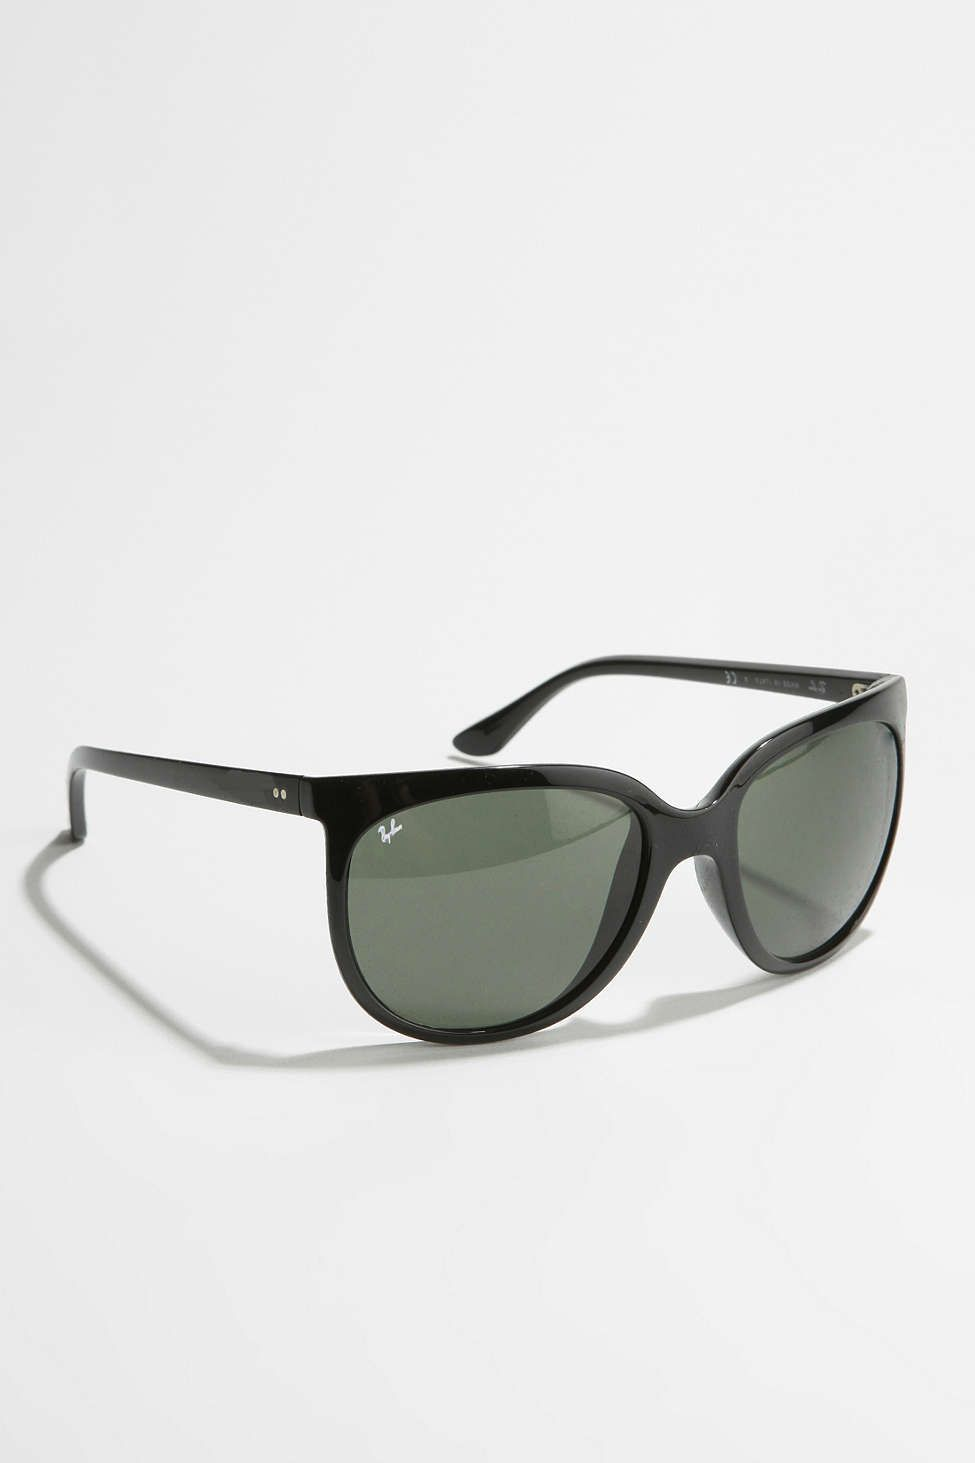 df9e882144 Ray Ban Rb3445 Replacement Sunglass Lenses - Restaurant and Palinka Bar